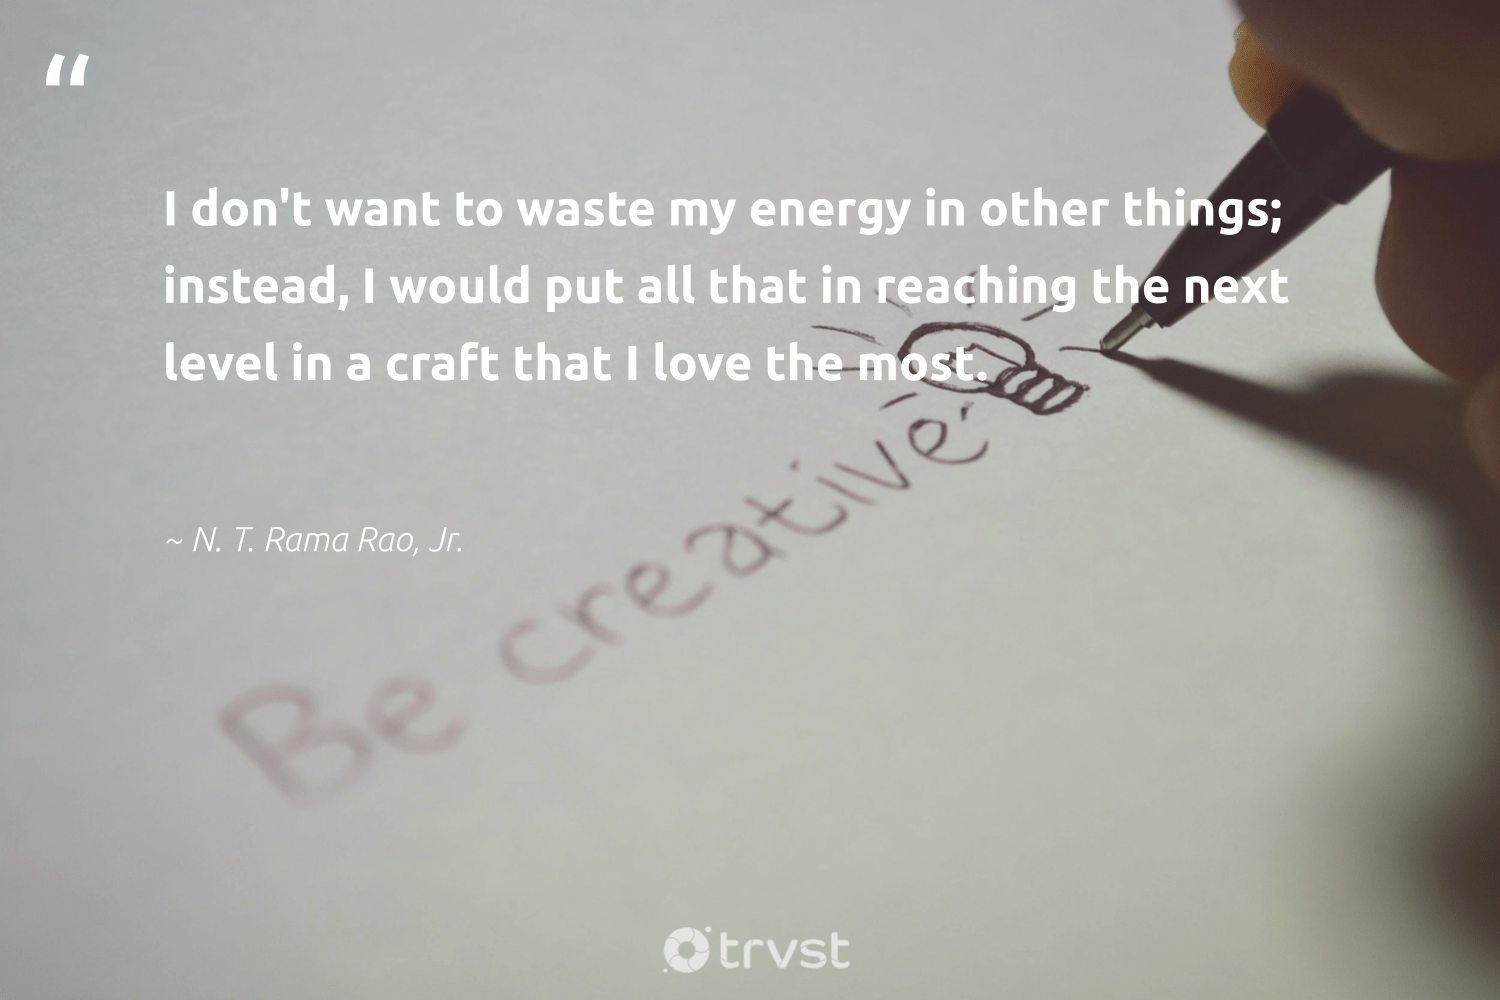 """I don't want to waste my energy in other things; instead, I would put all that in reaching the next level in a craft that I love the most.""  - N. T. Rama Rao, Jr. #trvst #quotes #love #waste #energy #makeadifference #impact #weareallone #changetheworld #betterplanet #planetearthfirst #ethicalbusiness"